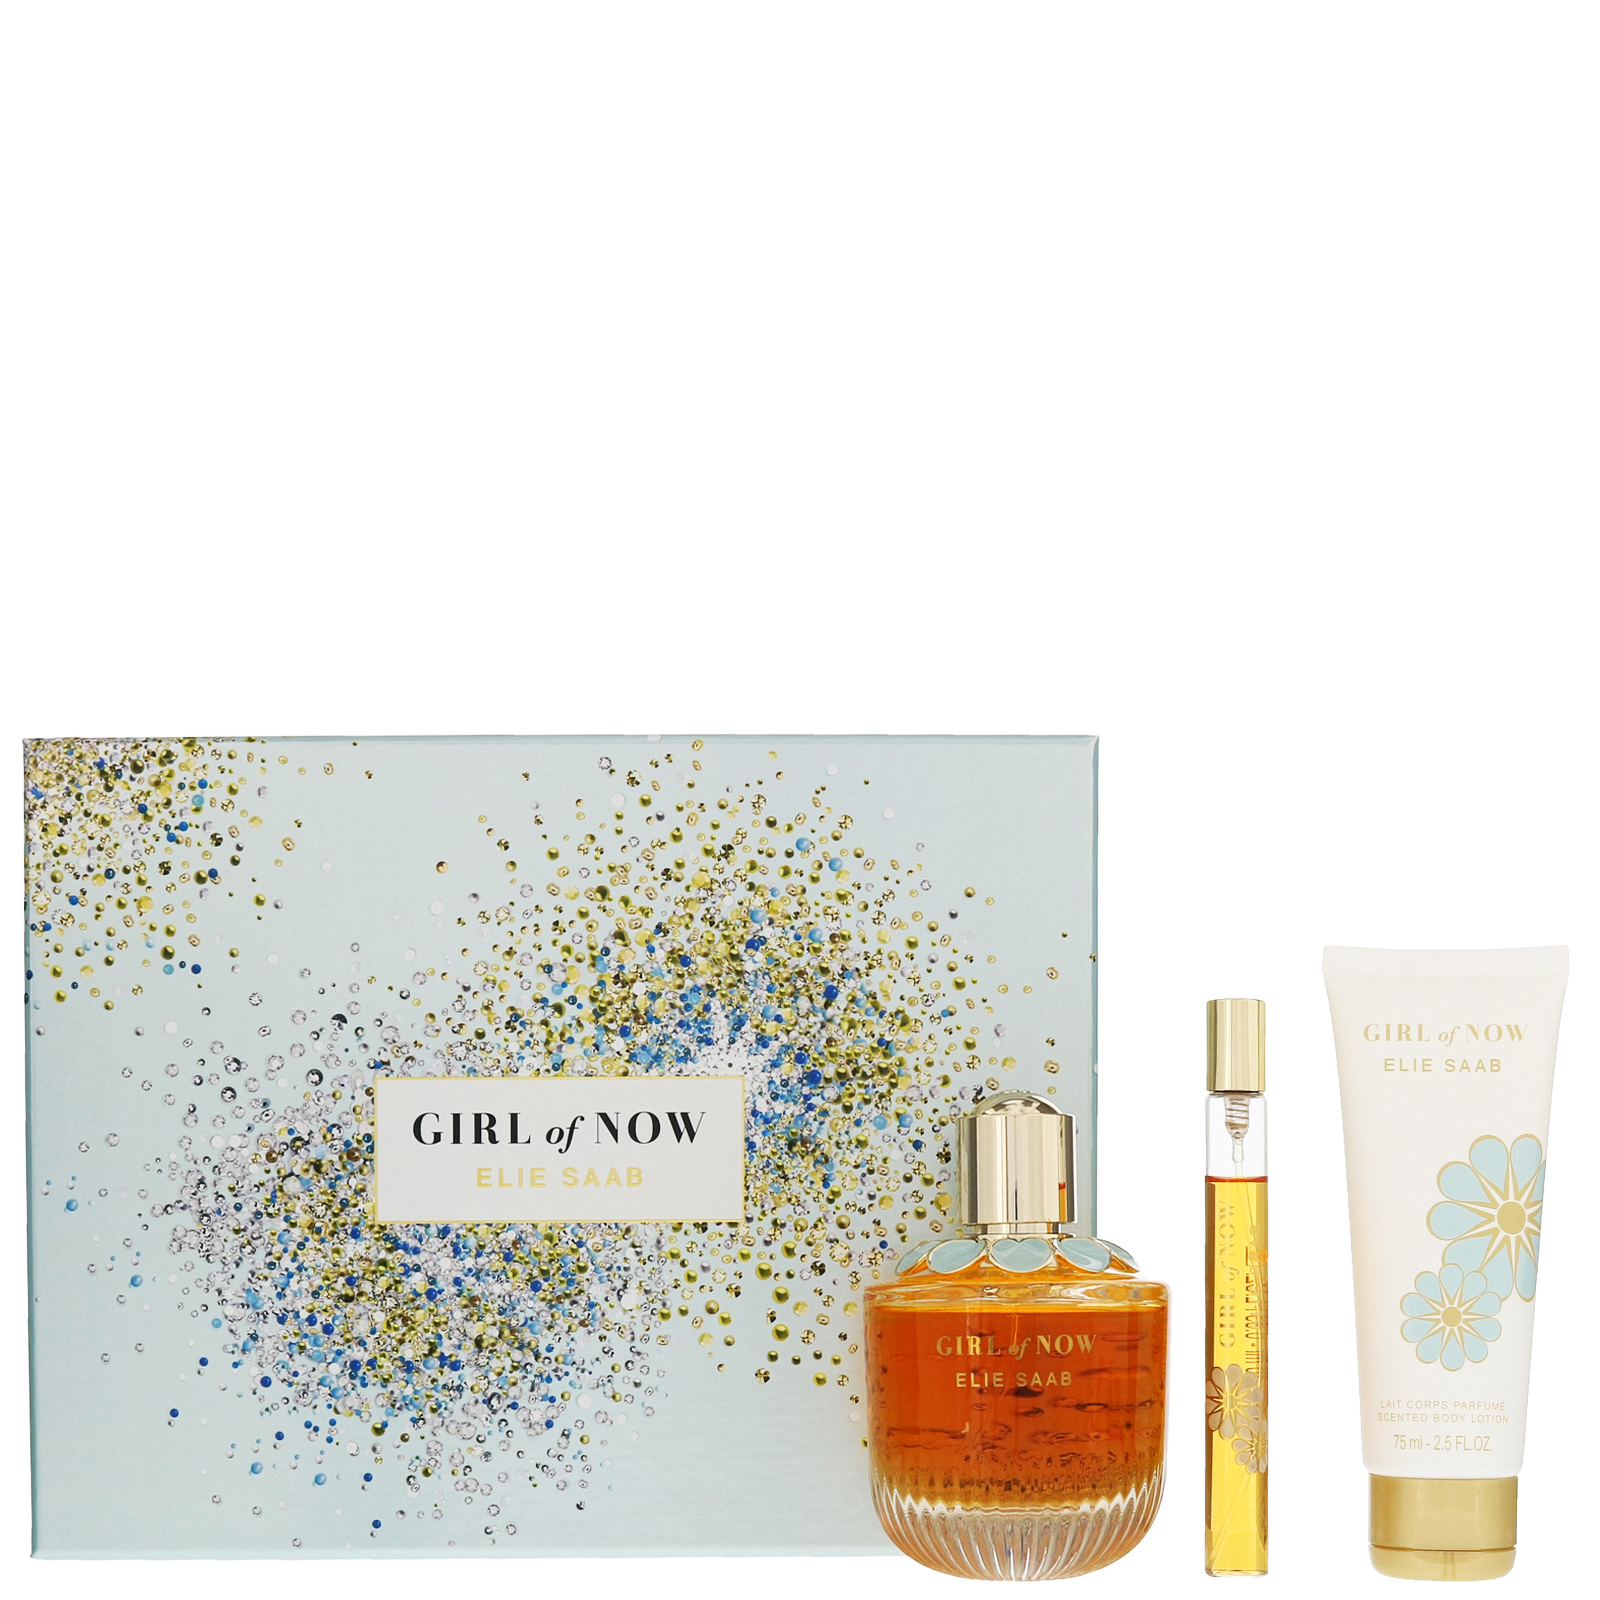 Elie Saab Girl Of Now Eau de Parfum Spray 90ml Gift Set